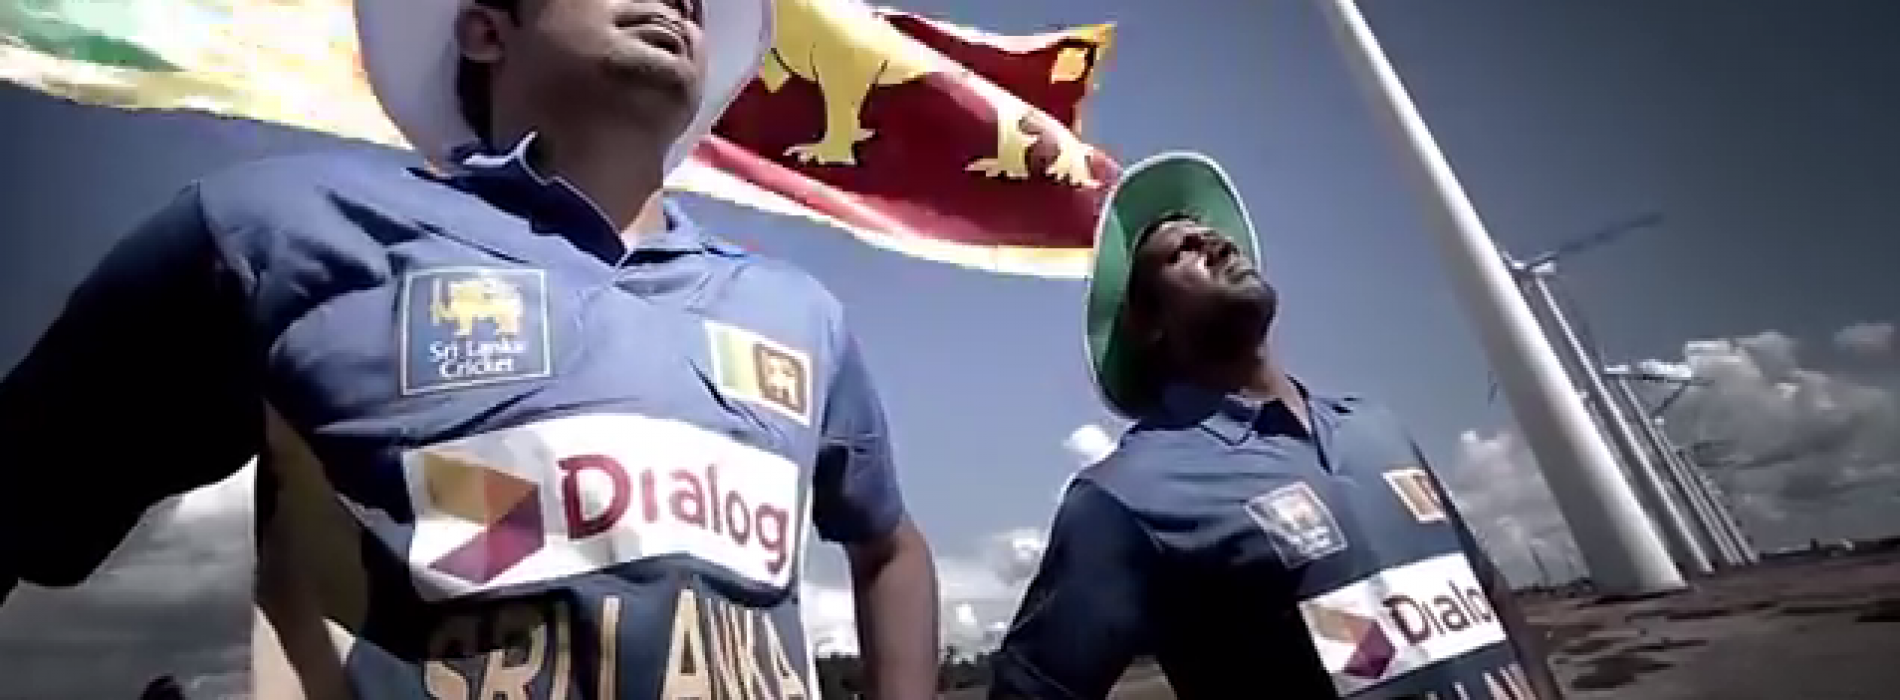 Official 2015 World Cup Song. #OurLionsOurPride